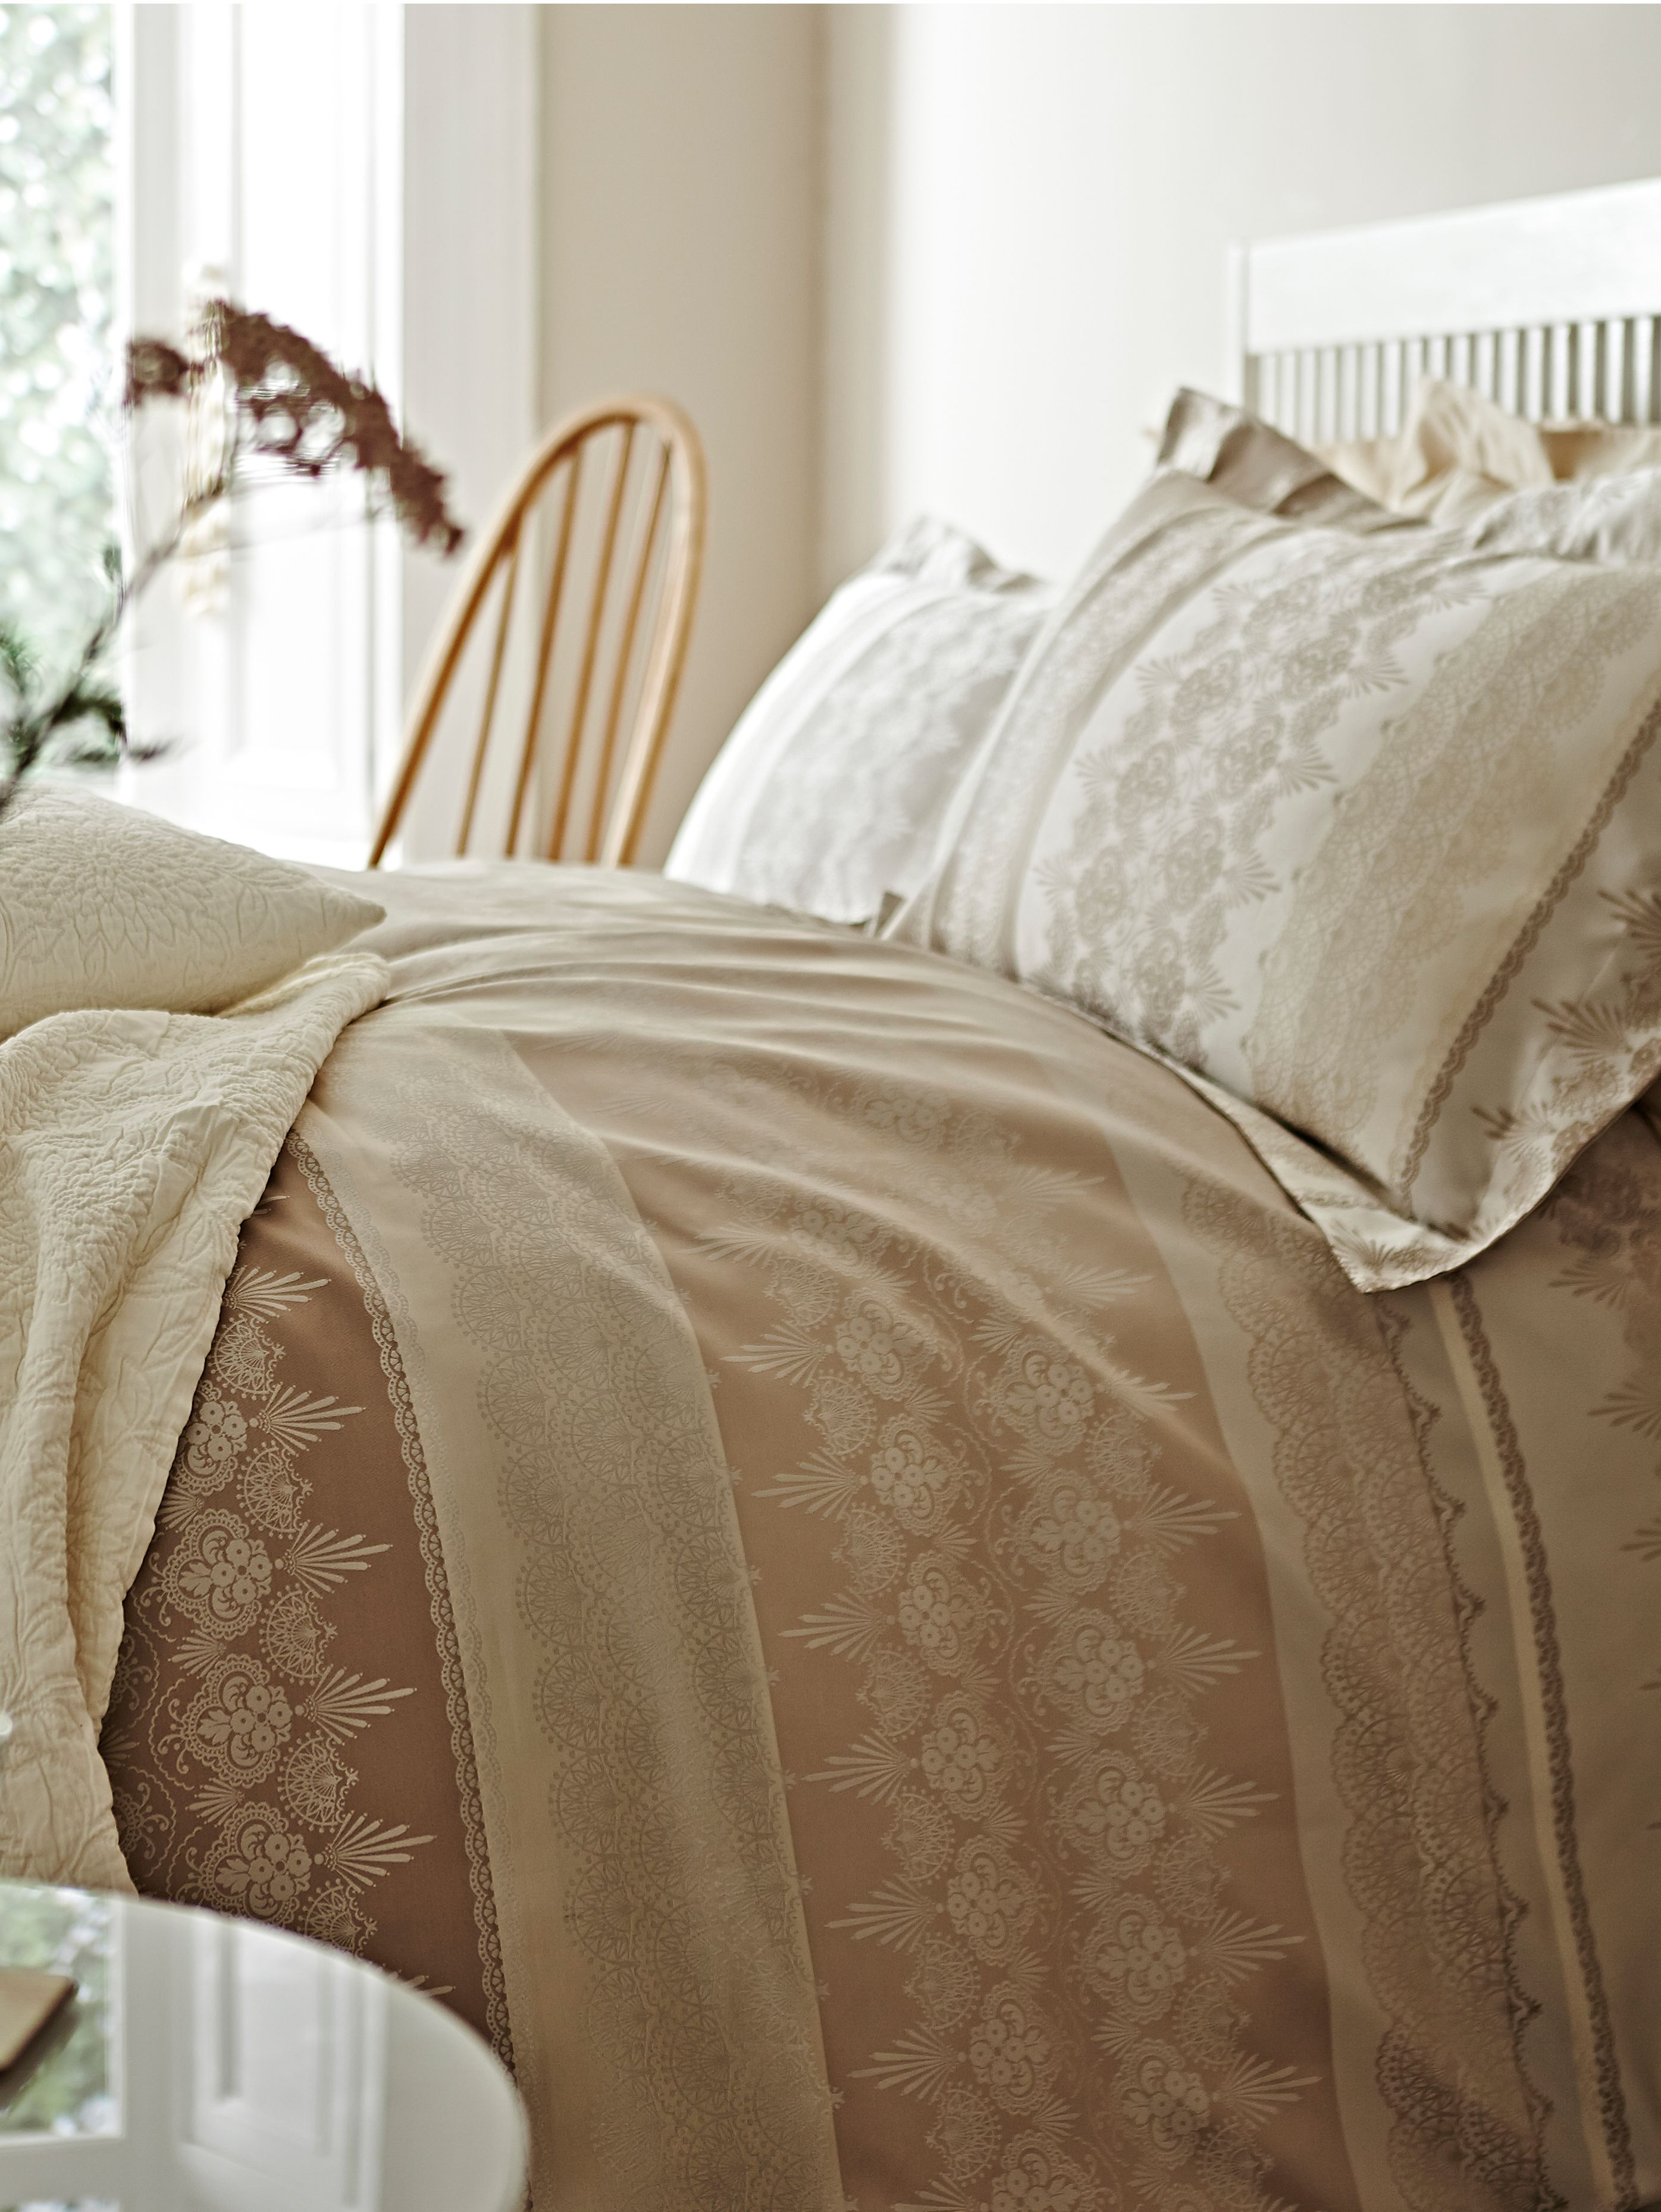 Lace jacquard king duvet set